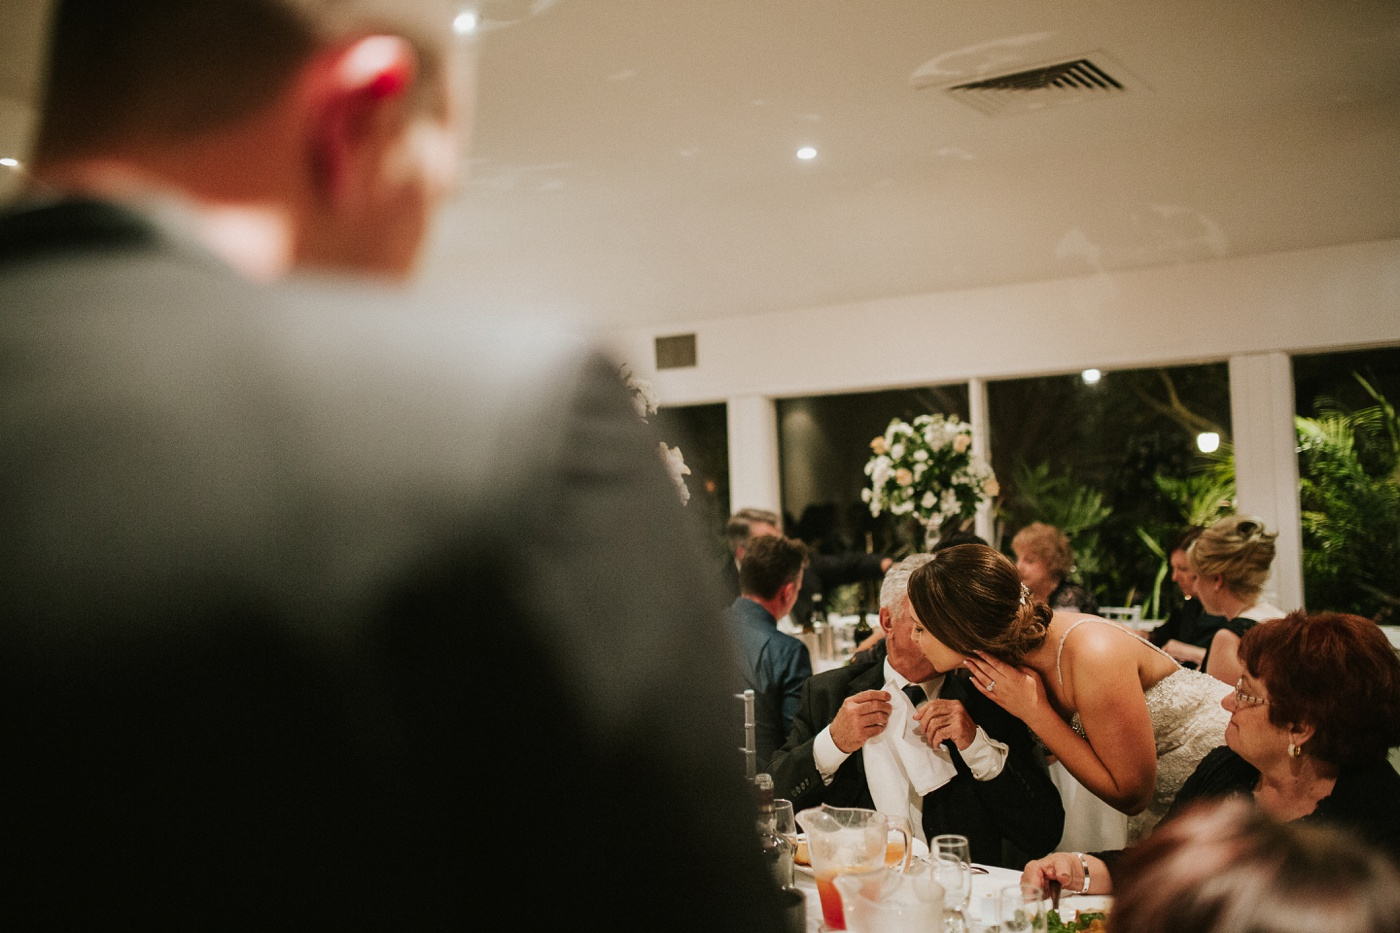 wesleybianca_dandenongs-sherbrooke-poets-lane-wedding_melbourne-quirky-fun-candid-wedding-photography_77